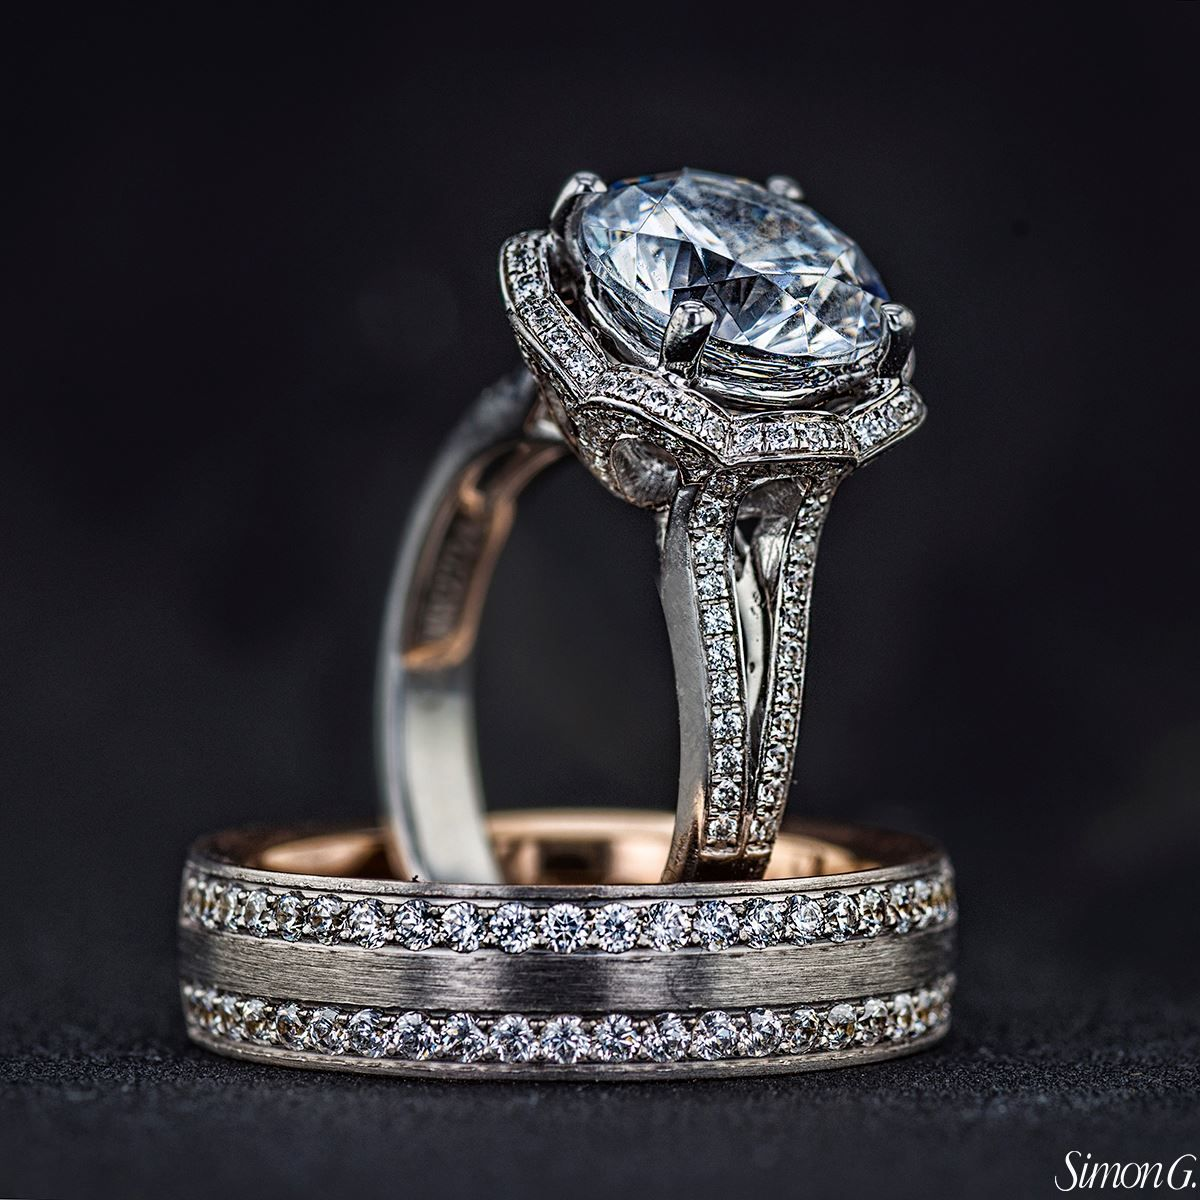 Get your engagement ring and wedding bands from Simon G with us in